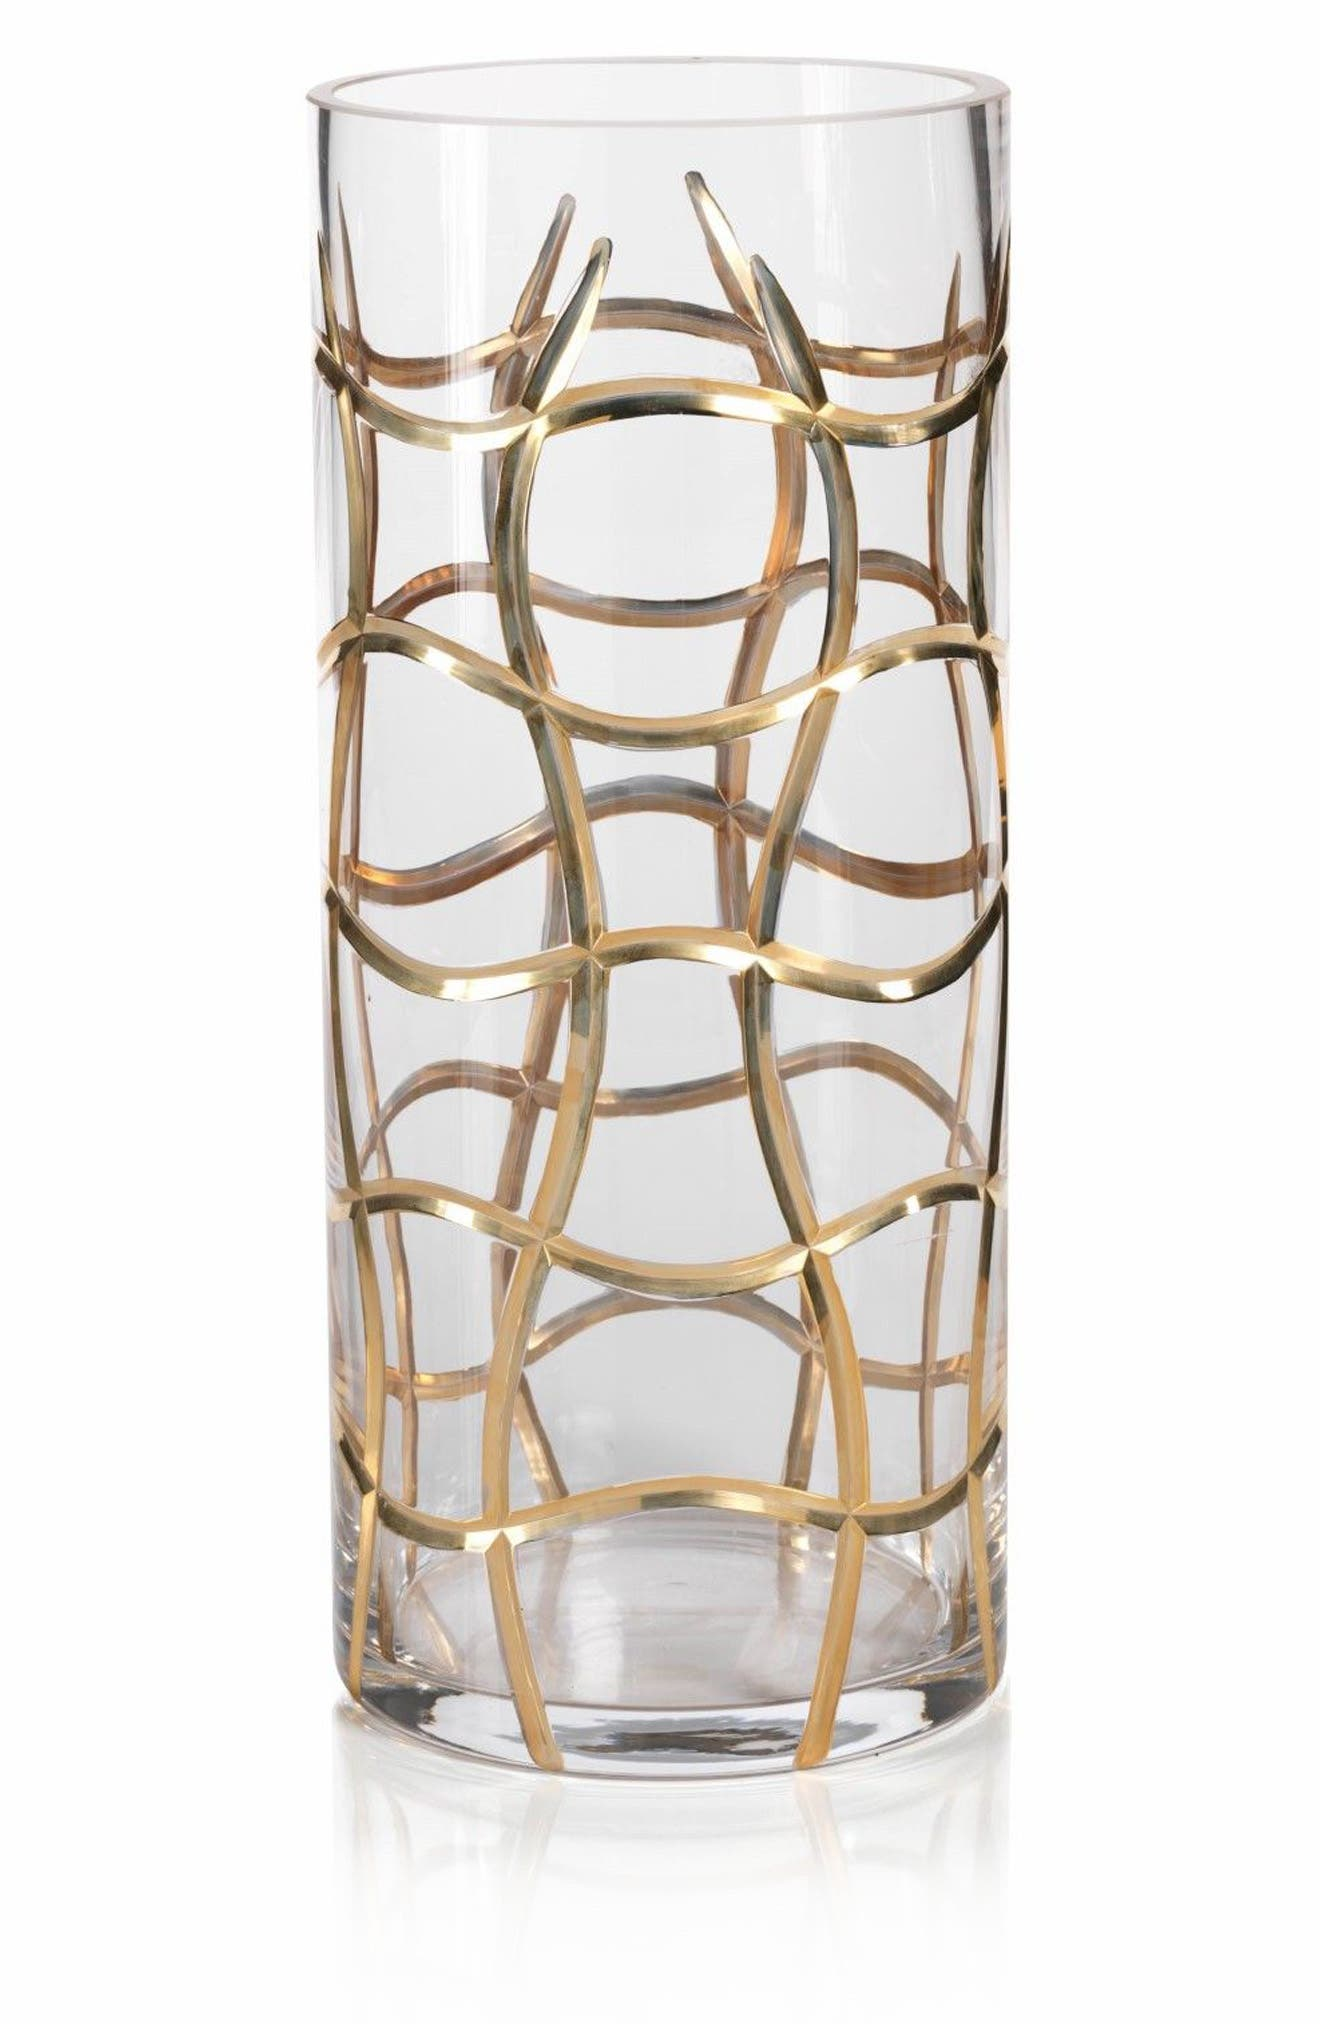 Large Groove Hurricane Candle Holder,                             Main thumbnail 1, color,                             Clear/ Gold/ Metallic